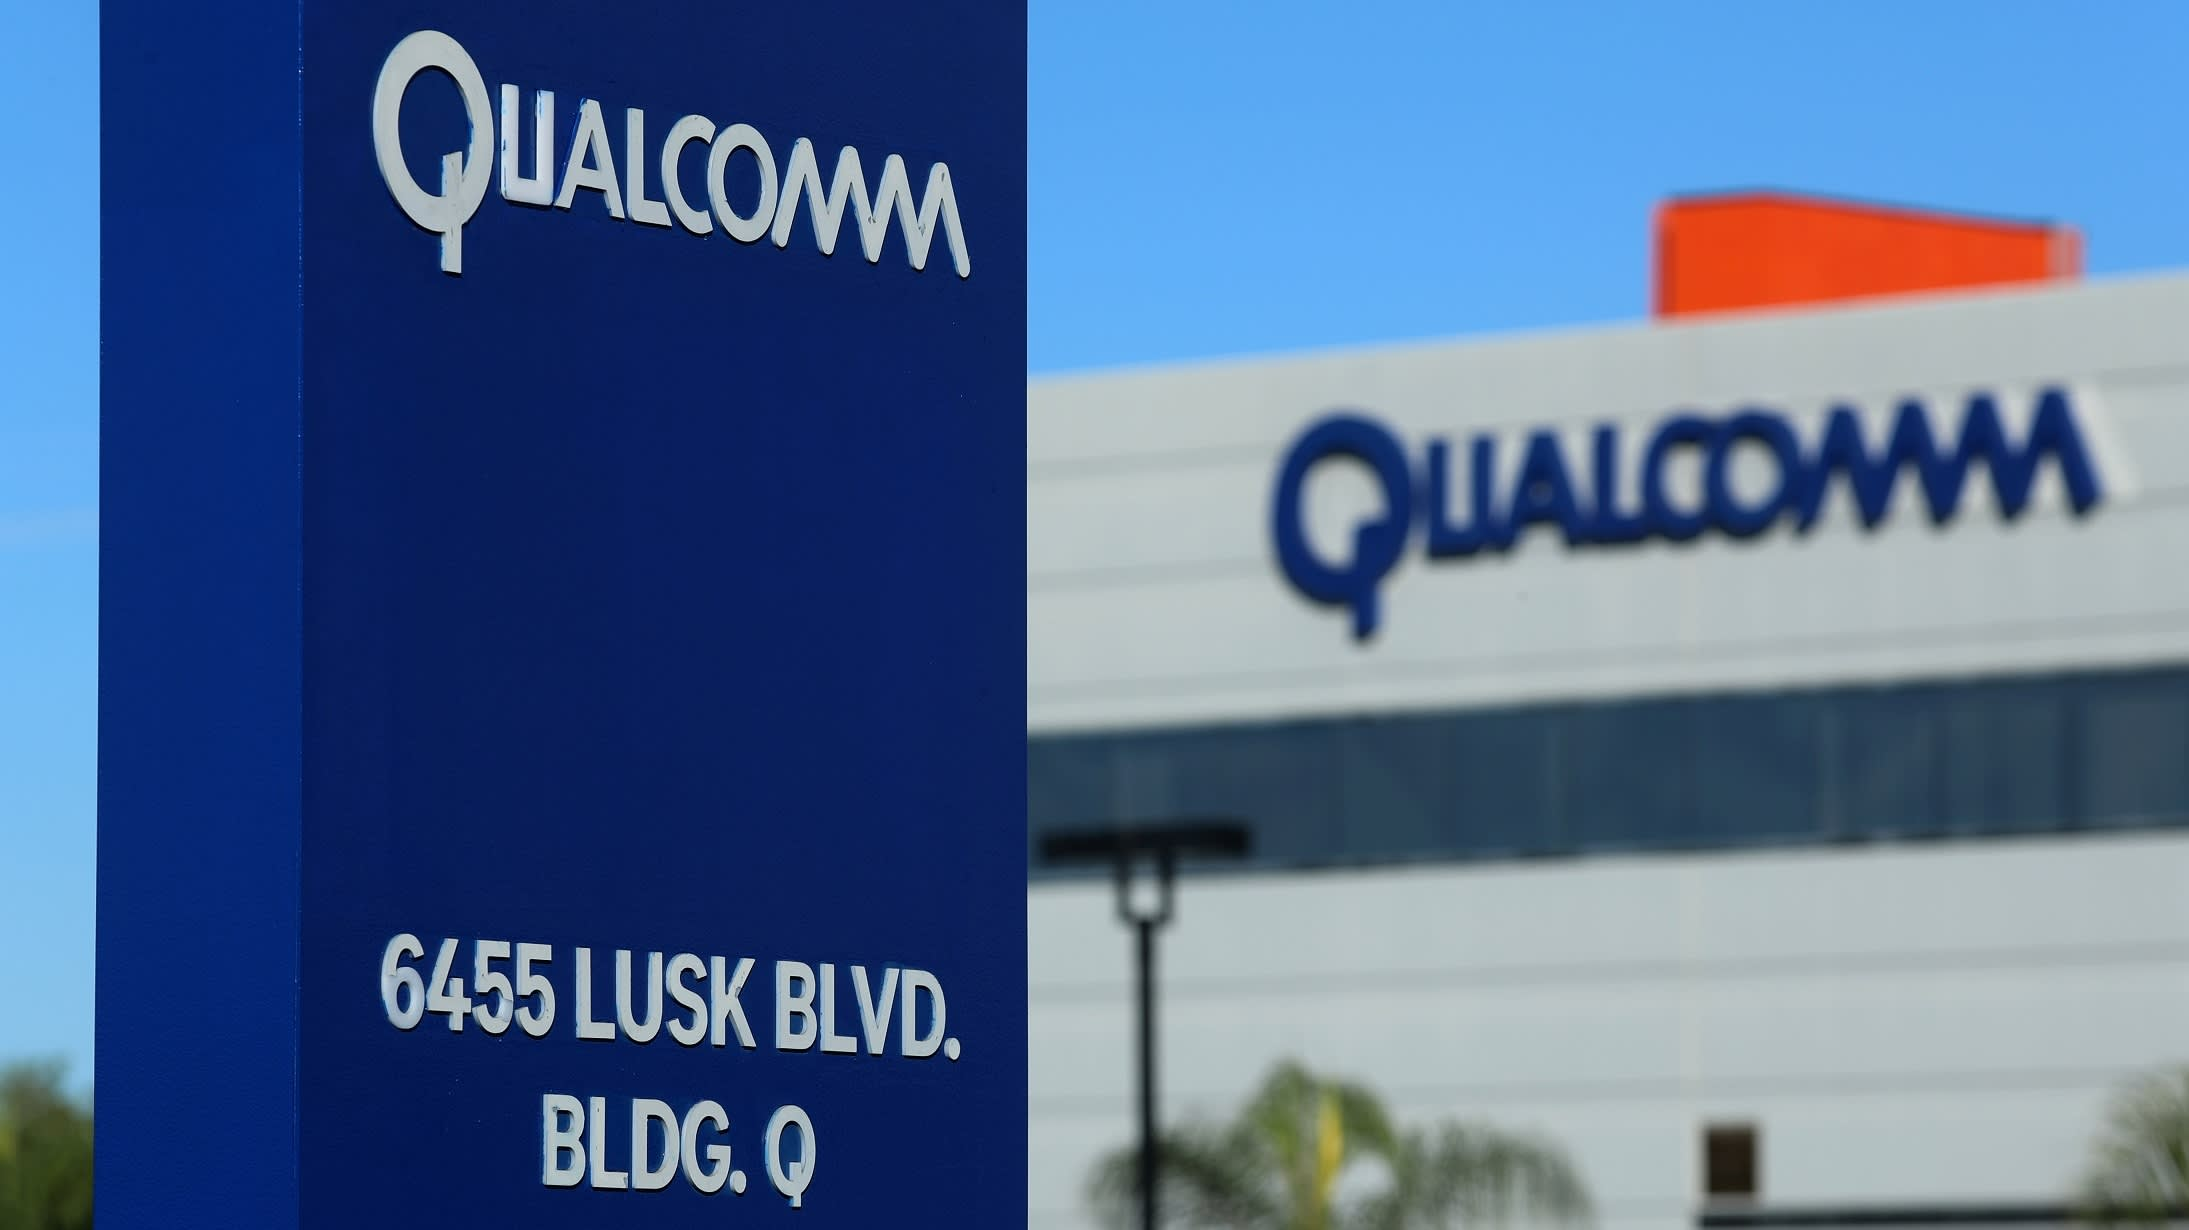 Qualcomm optimizes chips for new Google android P operating